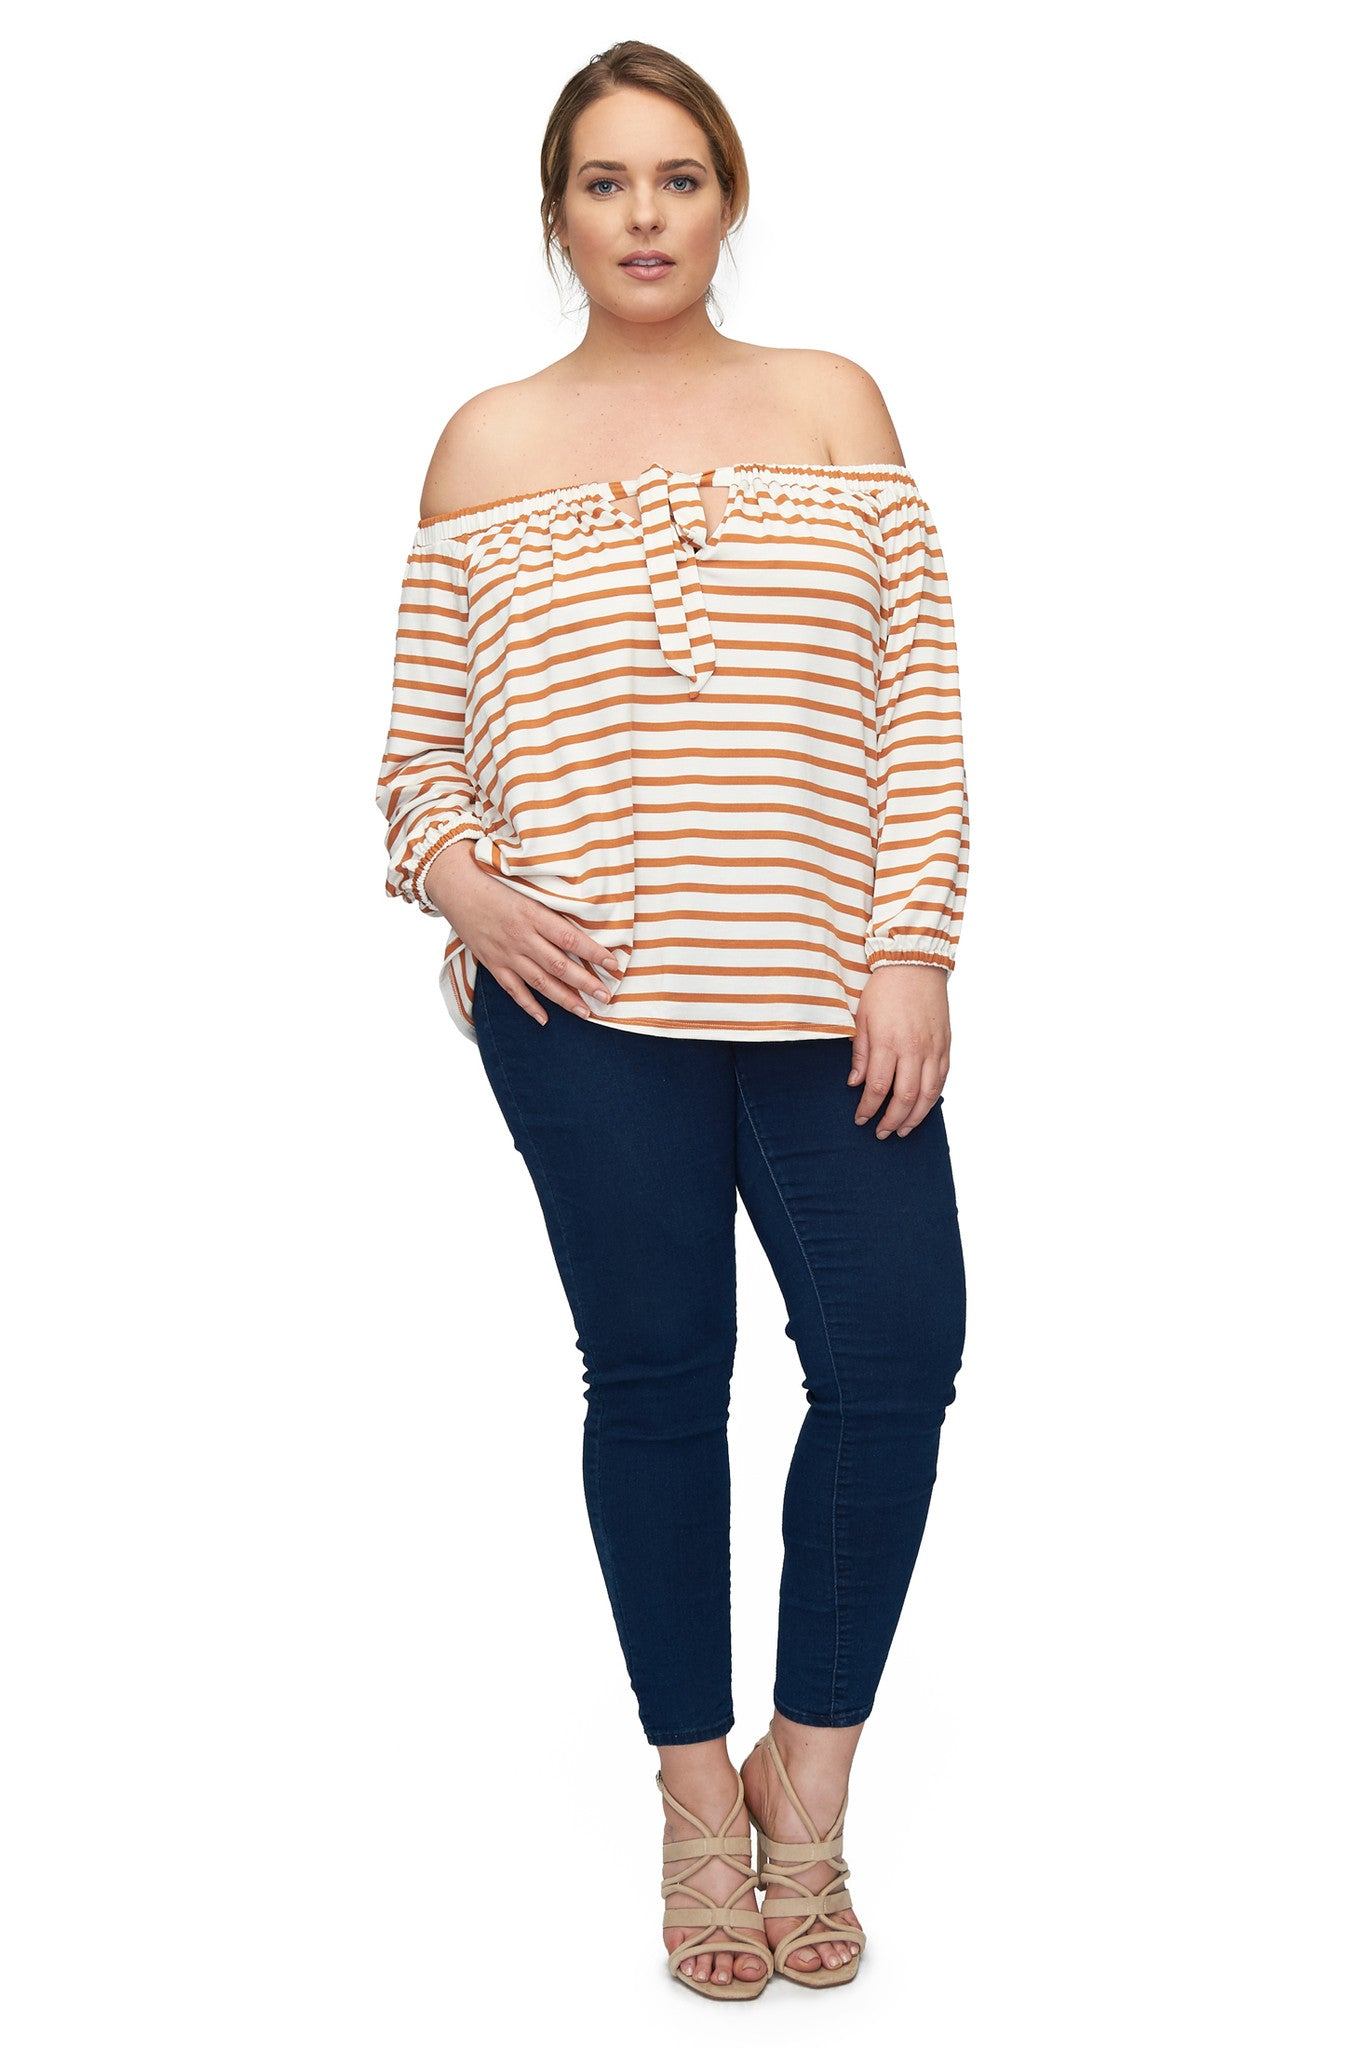 Marc Top WL Print - Flan Stripe